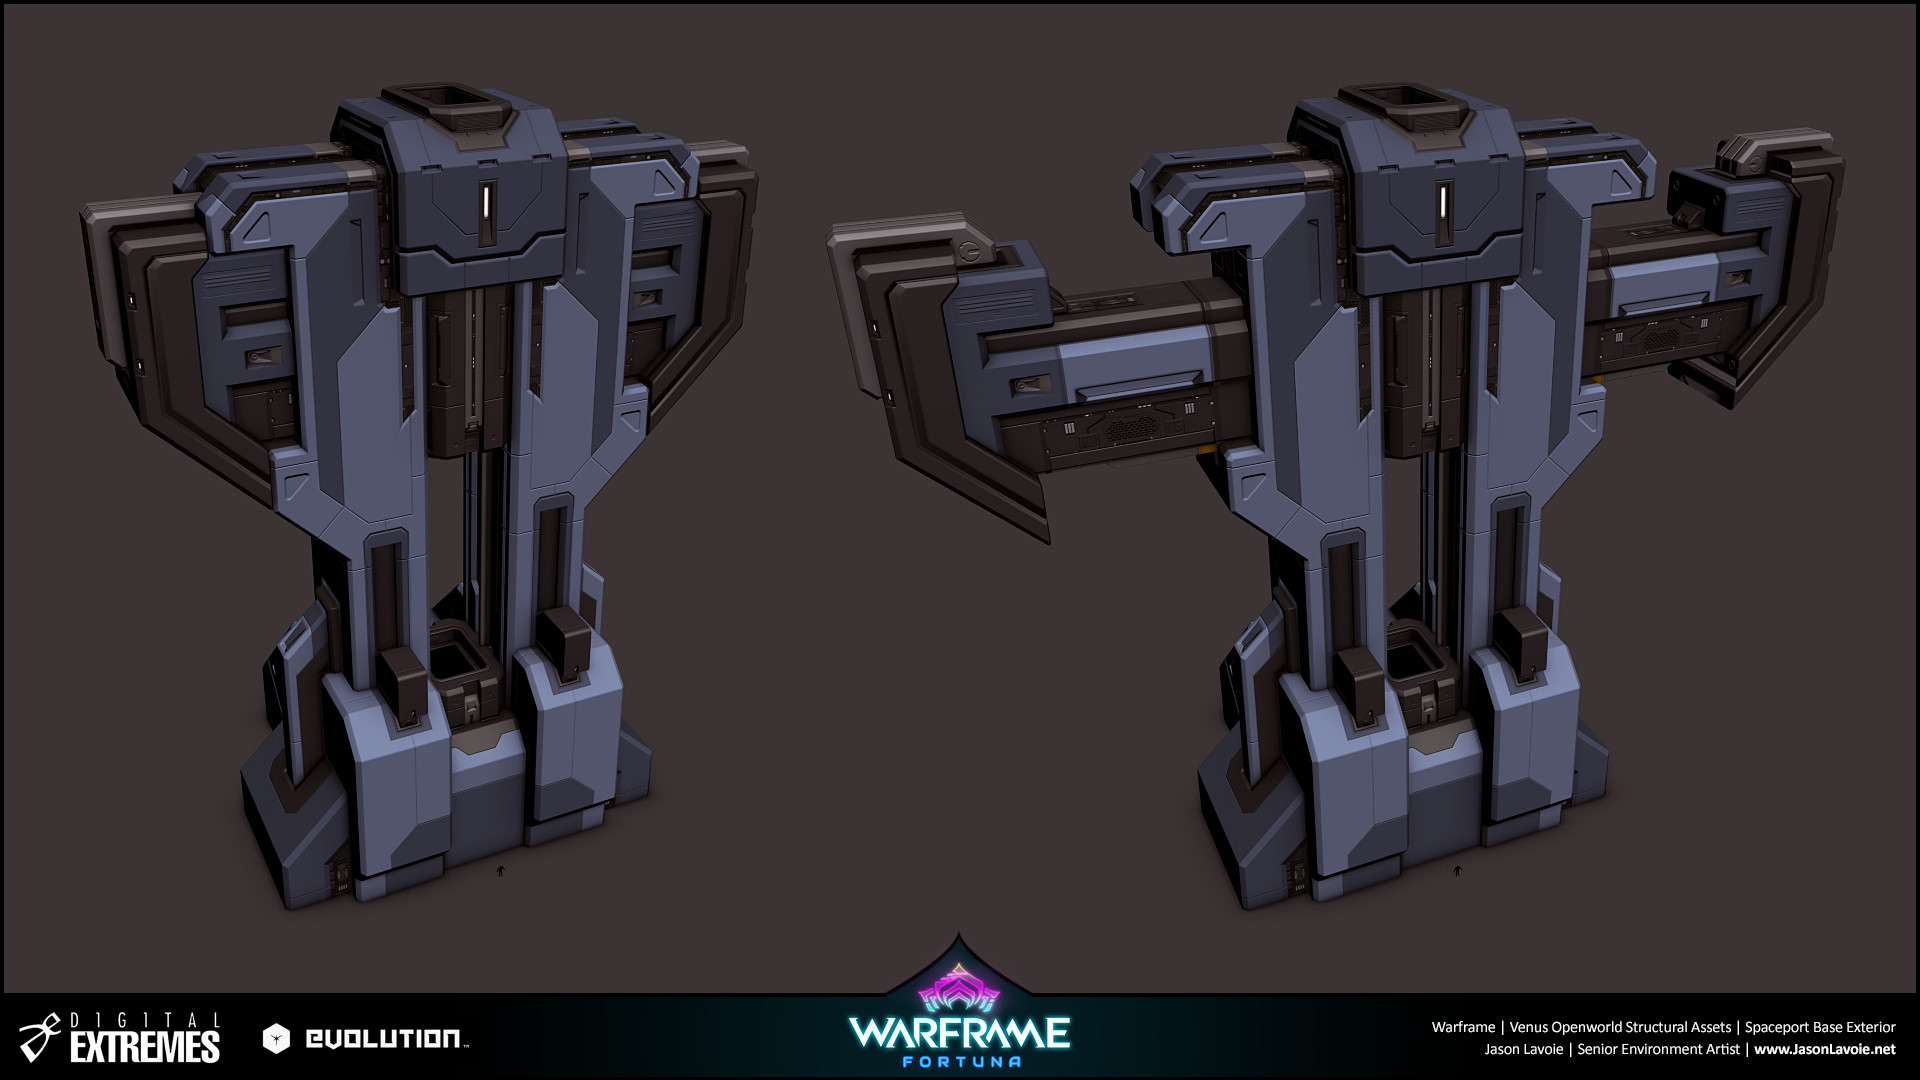 Jason lavoie jasonlavoie warframefortuna spaceportbaseexterior 3dmax tower